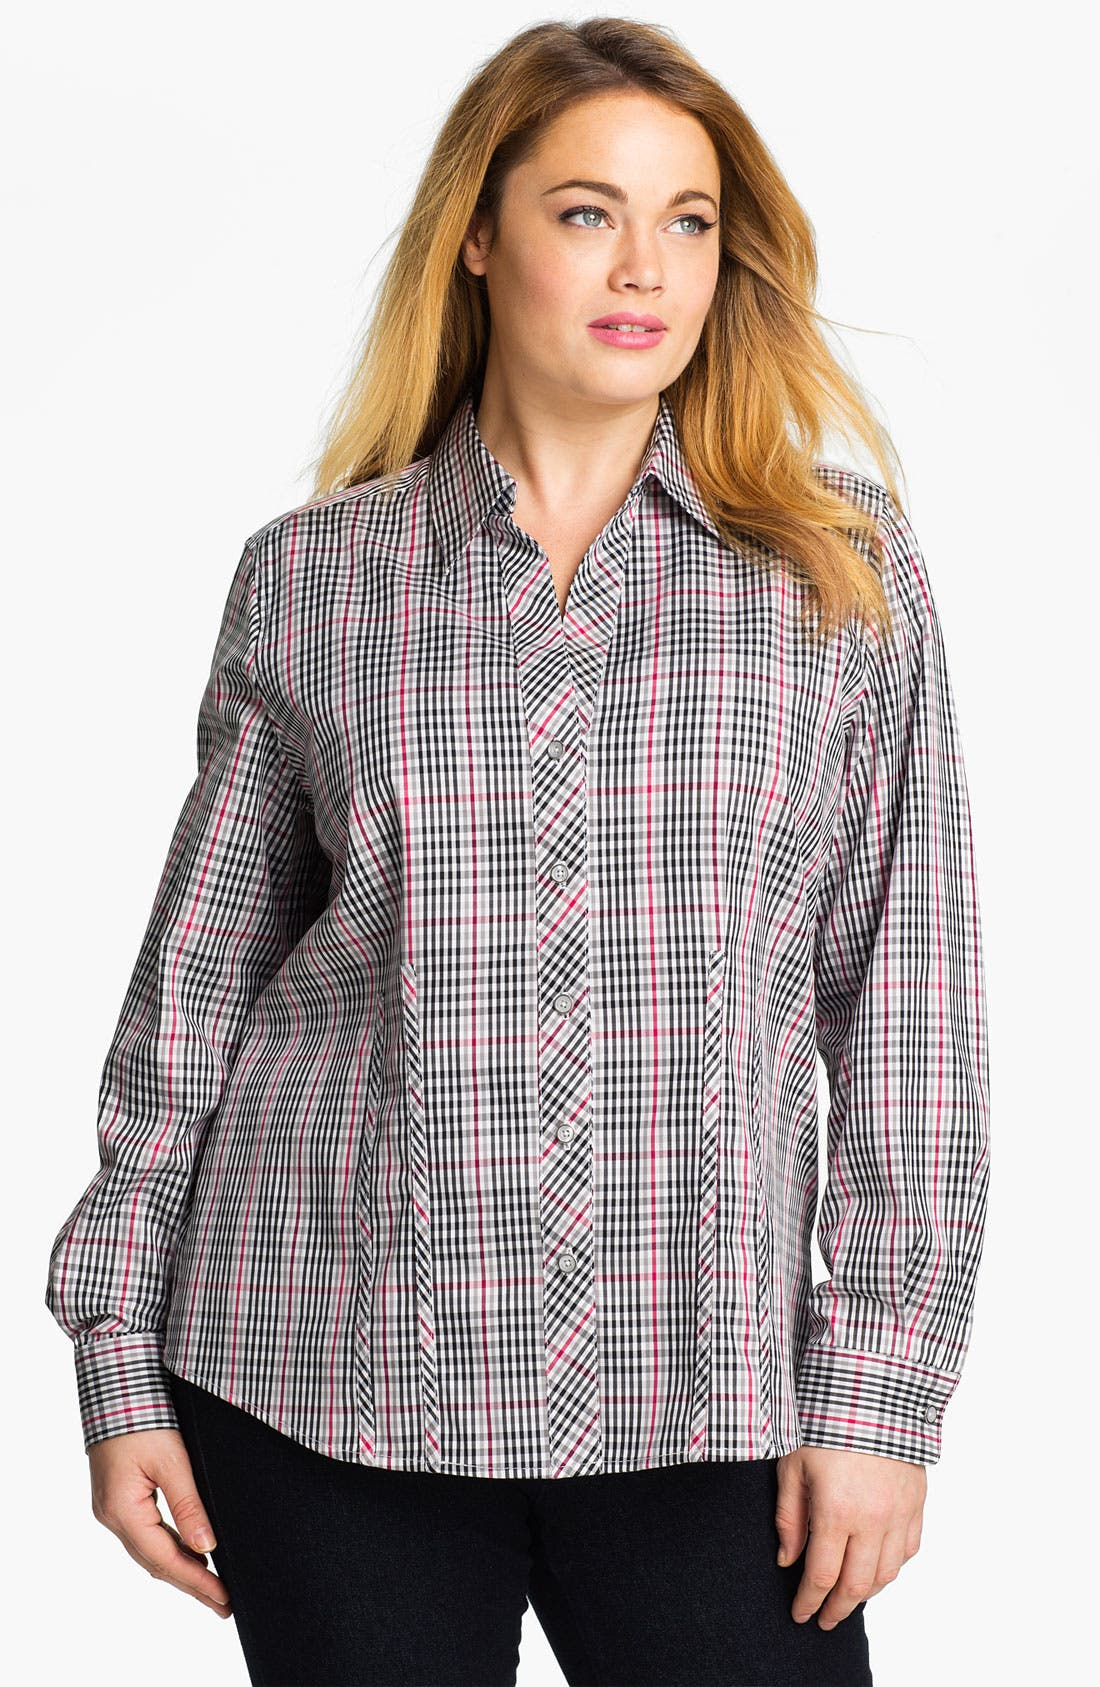 Alternate Image 1 Selected - Foxcroft 'Holiday Check' Wrinkle Free Shaped Shirt (Plus)